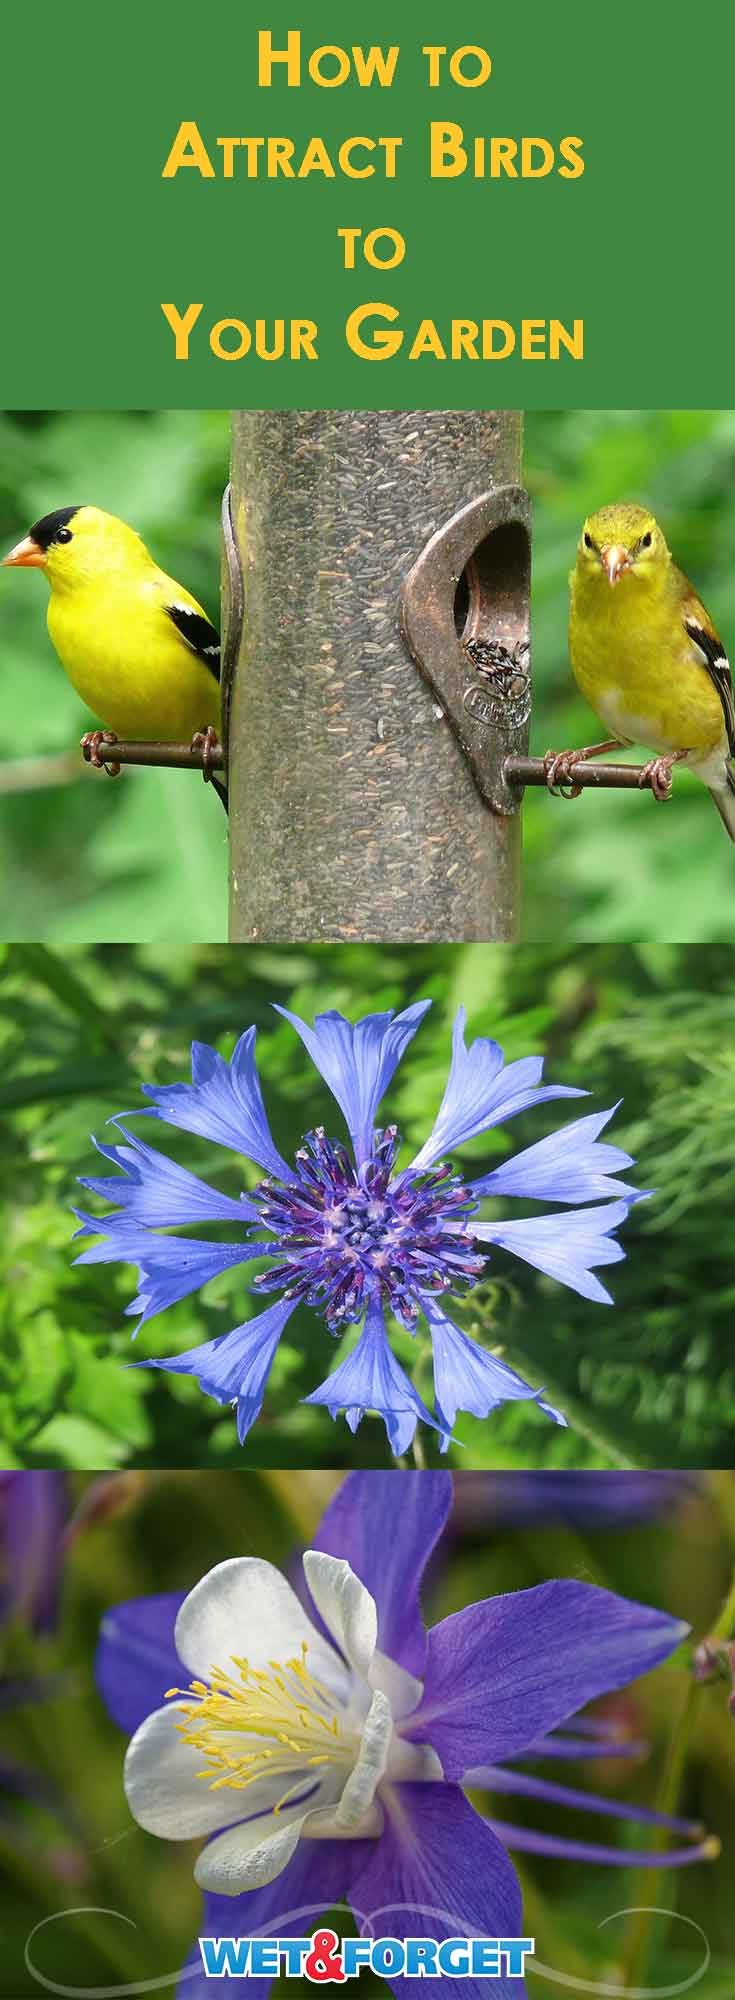 Attracting birds to your garden is so easy! Our guide explains which flowers and accessories can attract more birds to your garden.